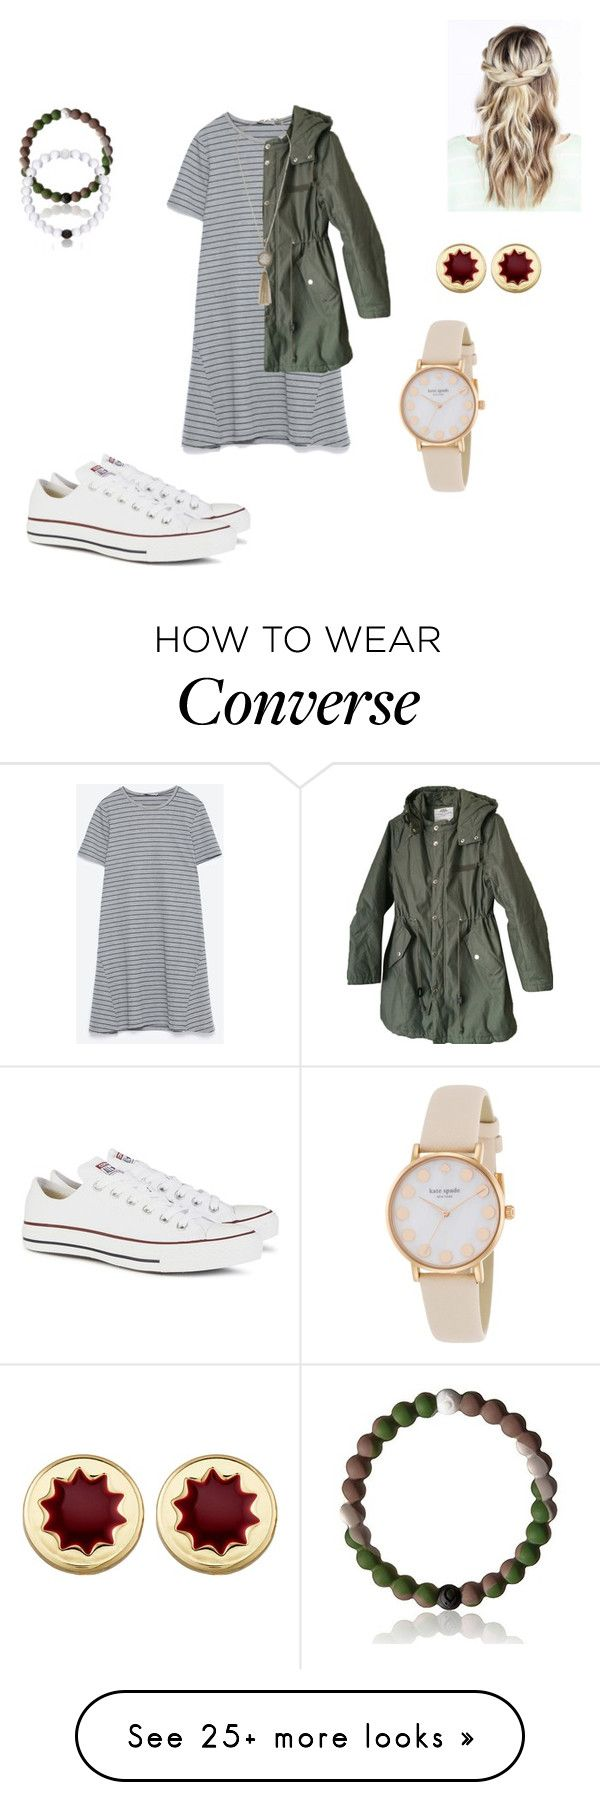 """""""""""C"""" for Converse"""" by mduerr on Polyvore featuring Converse, Zara, Cheap Monday, Lucky Brand, Everest, House of Harlow 1960 and Kate Spade"""